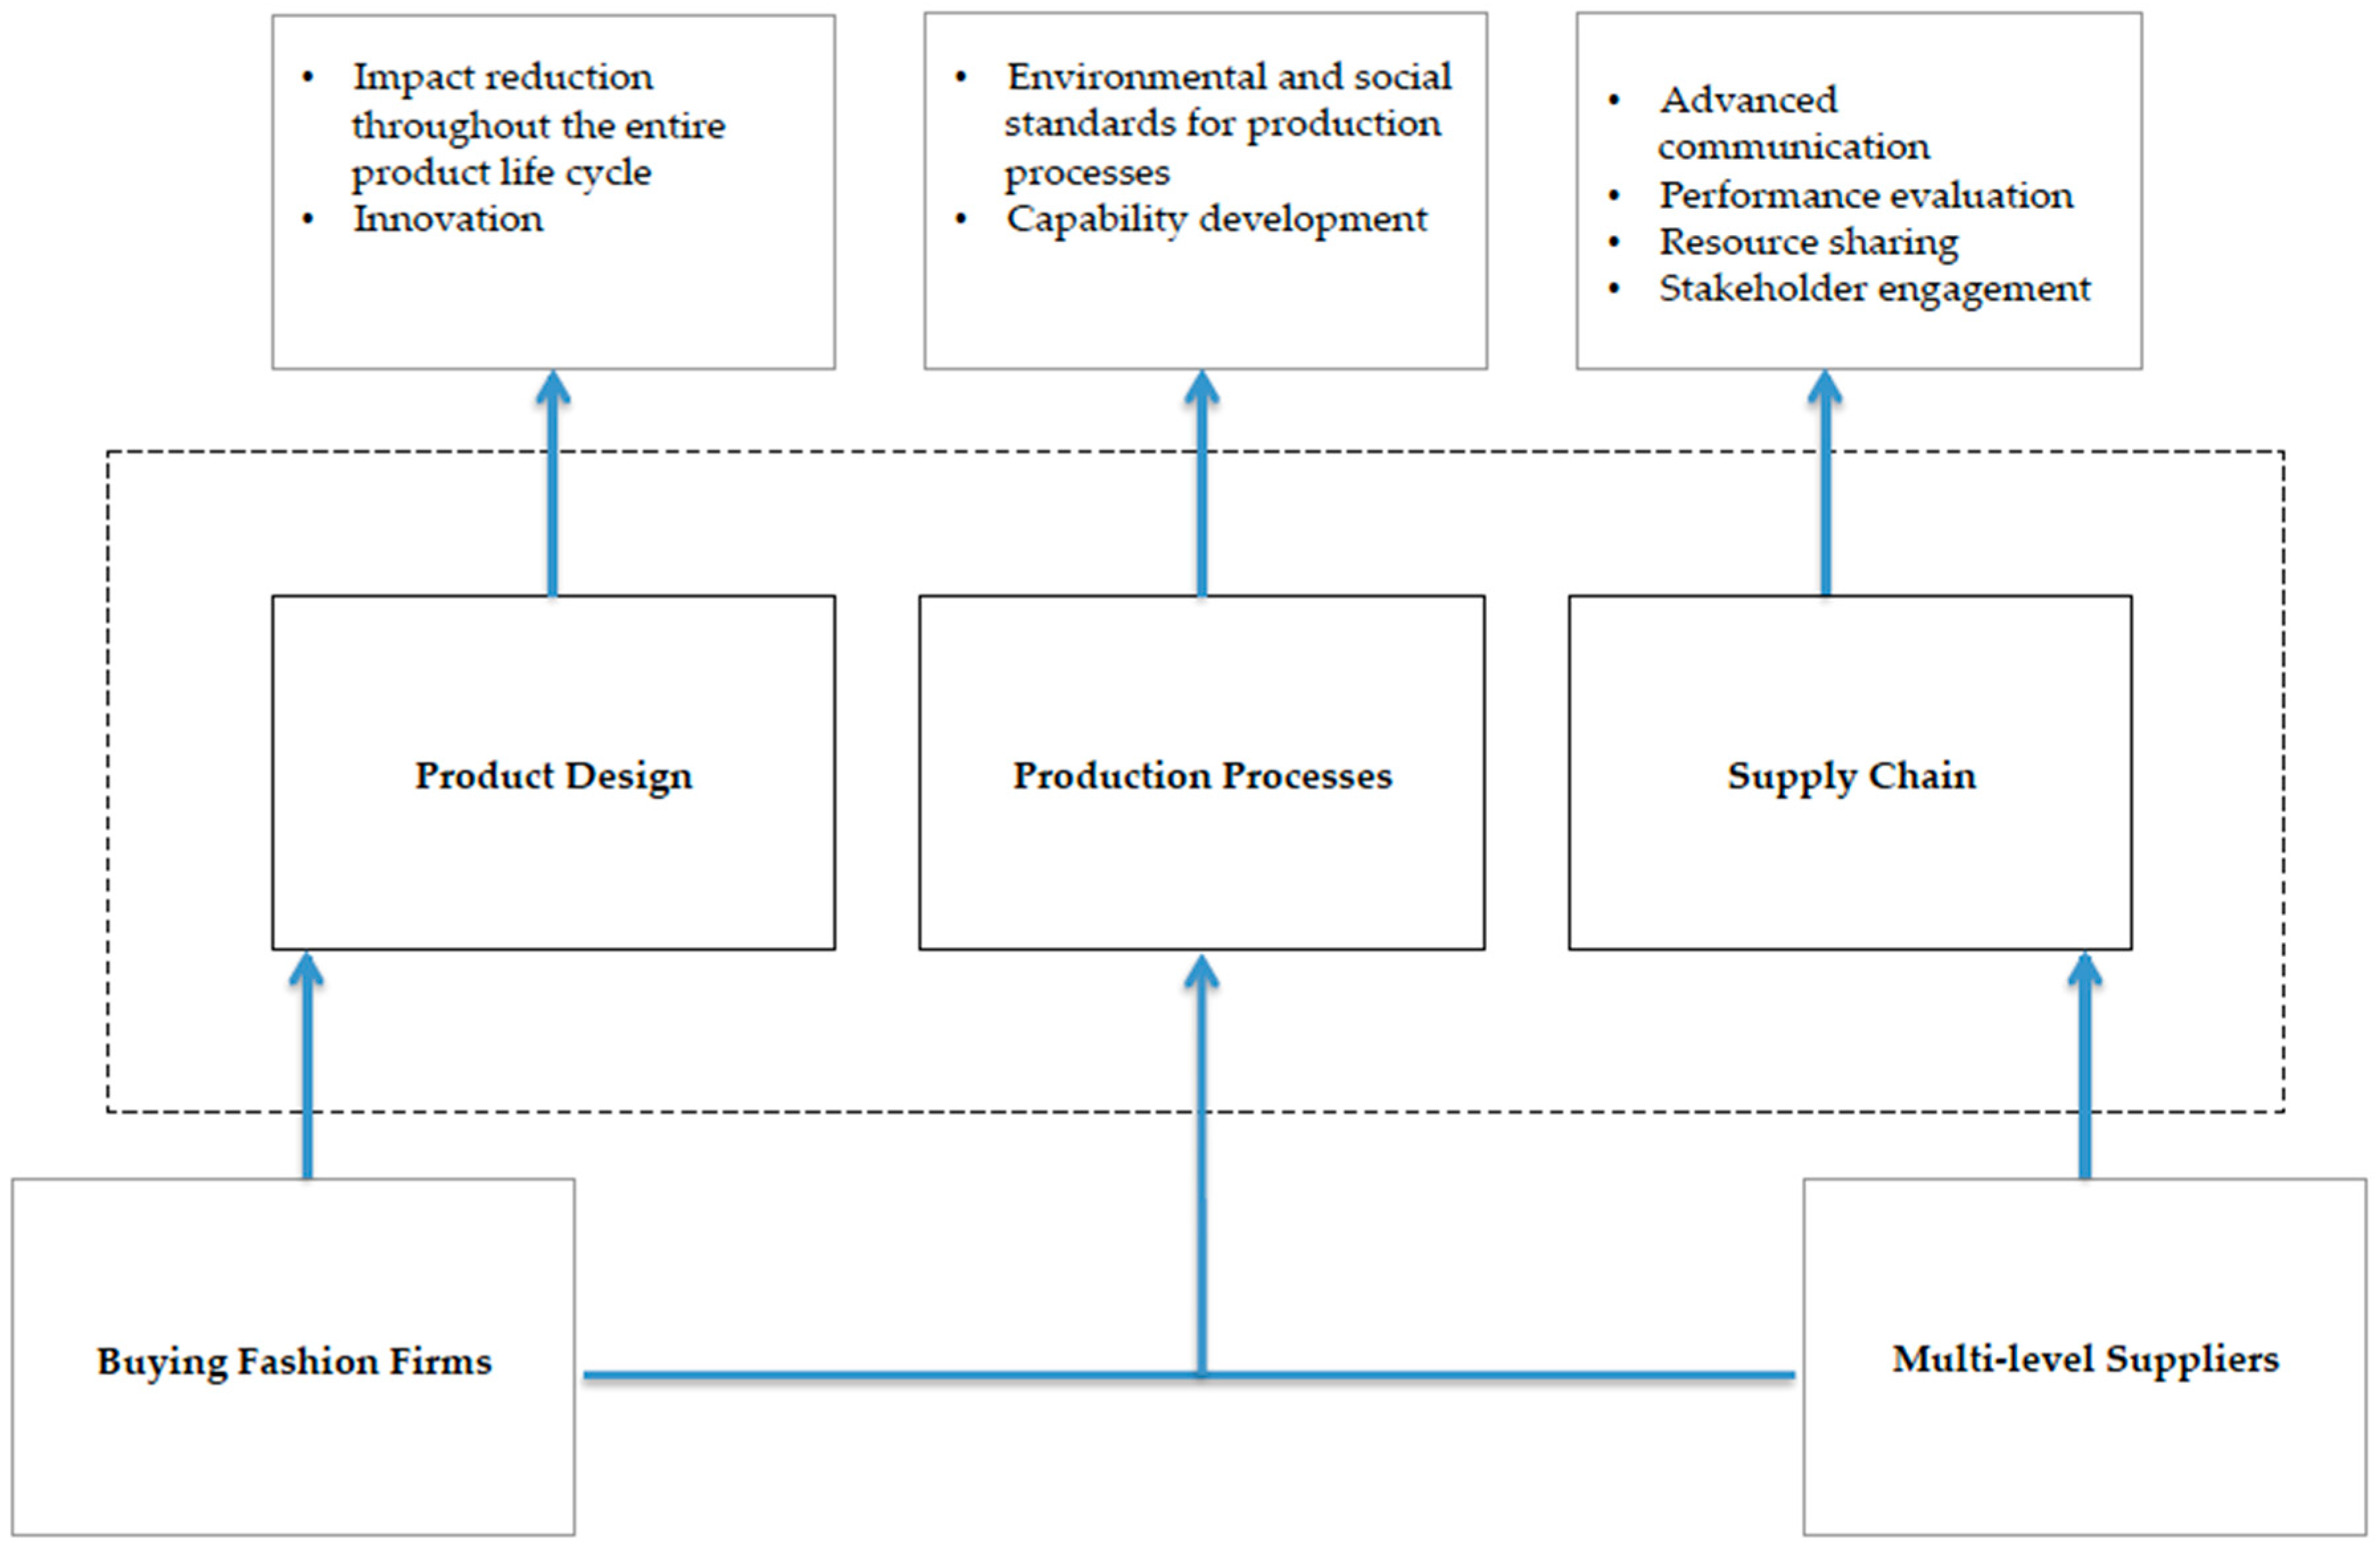 analysis of consumer decision making process essay Advances in consumer research volume 19, 1992 pages 491-497 influence of problem recognition on search and other decision process variables: a framework for analysis.